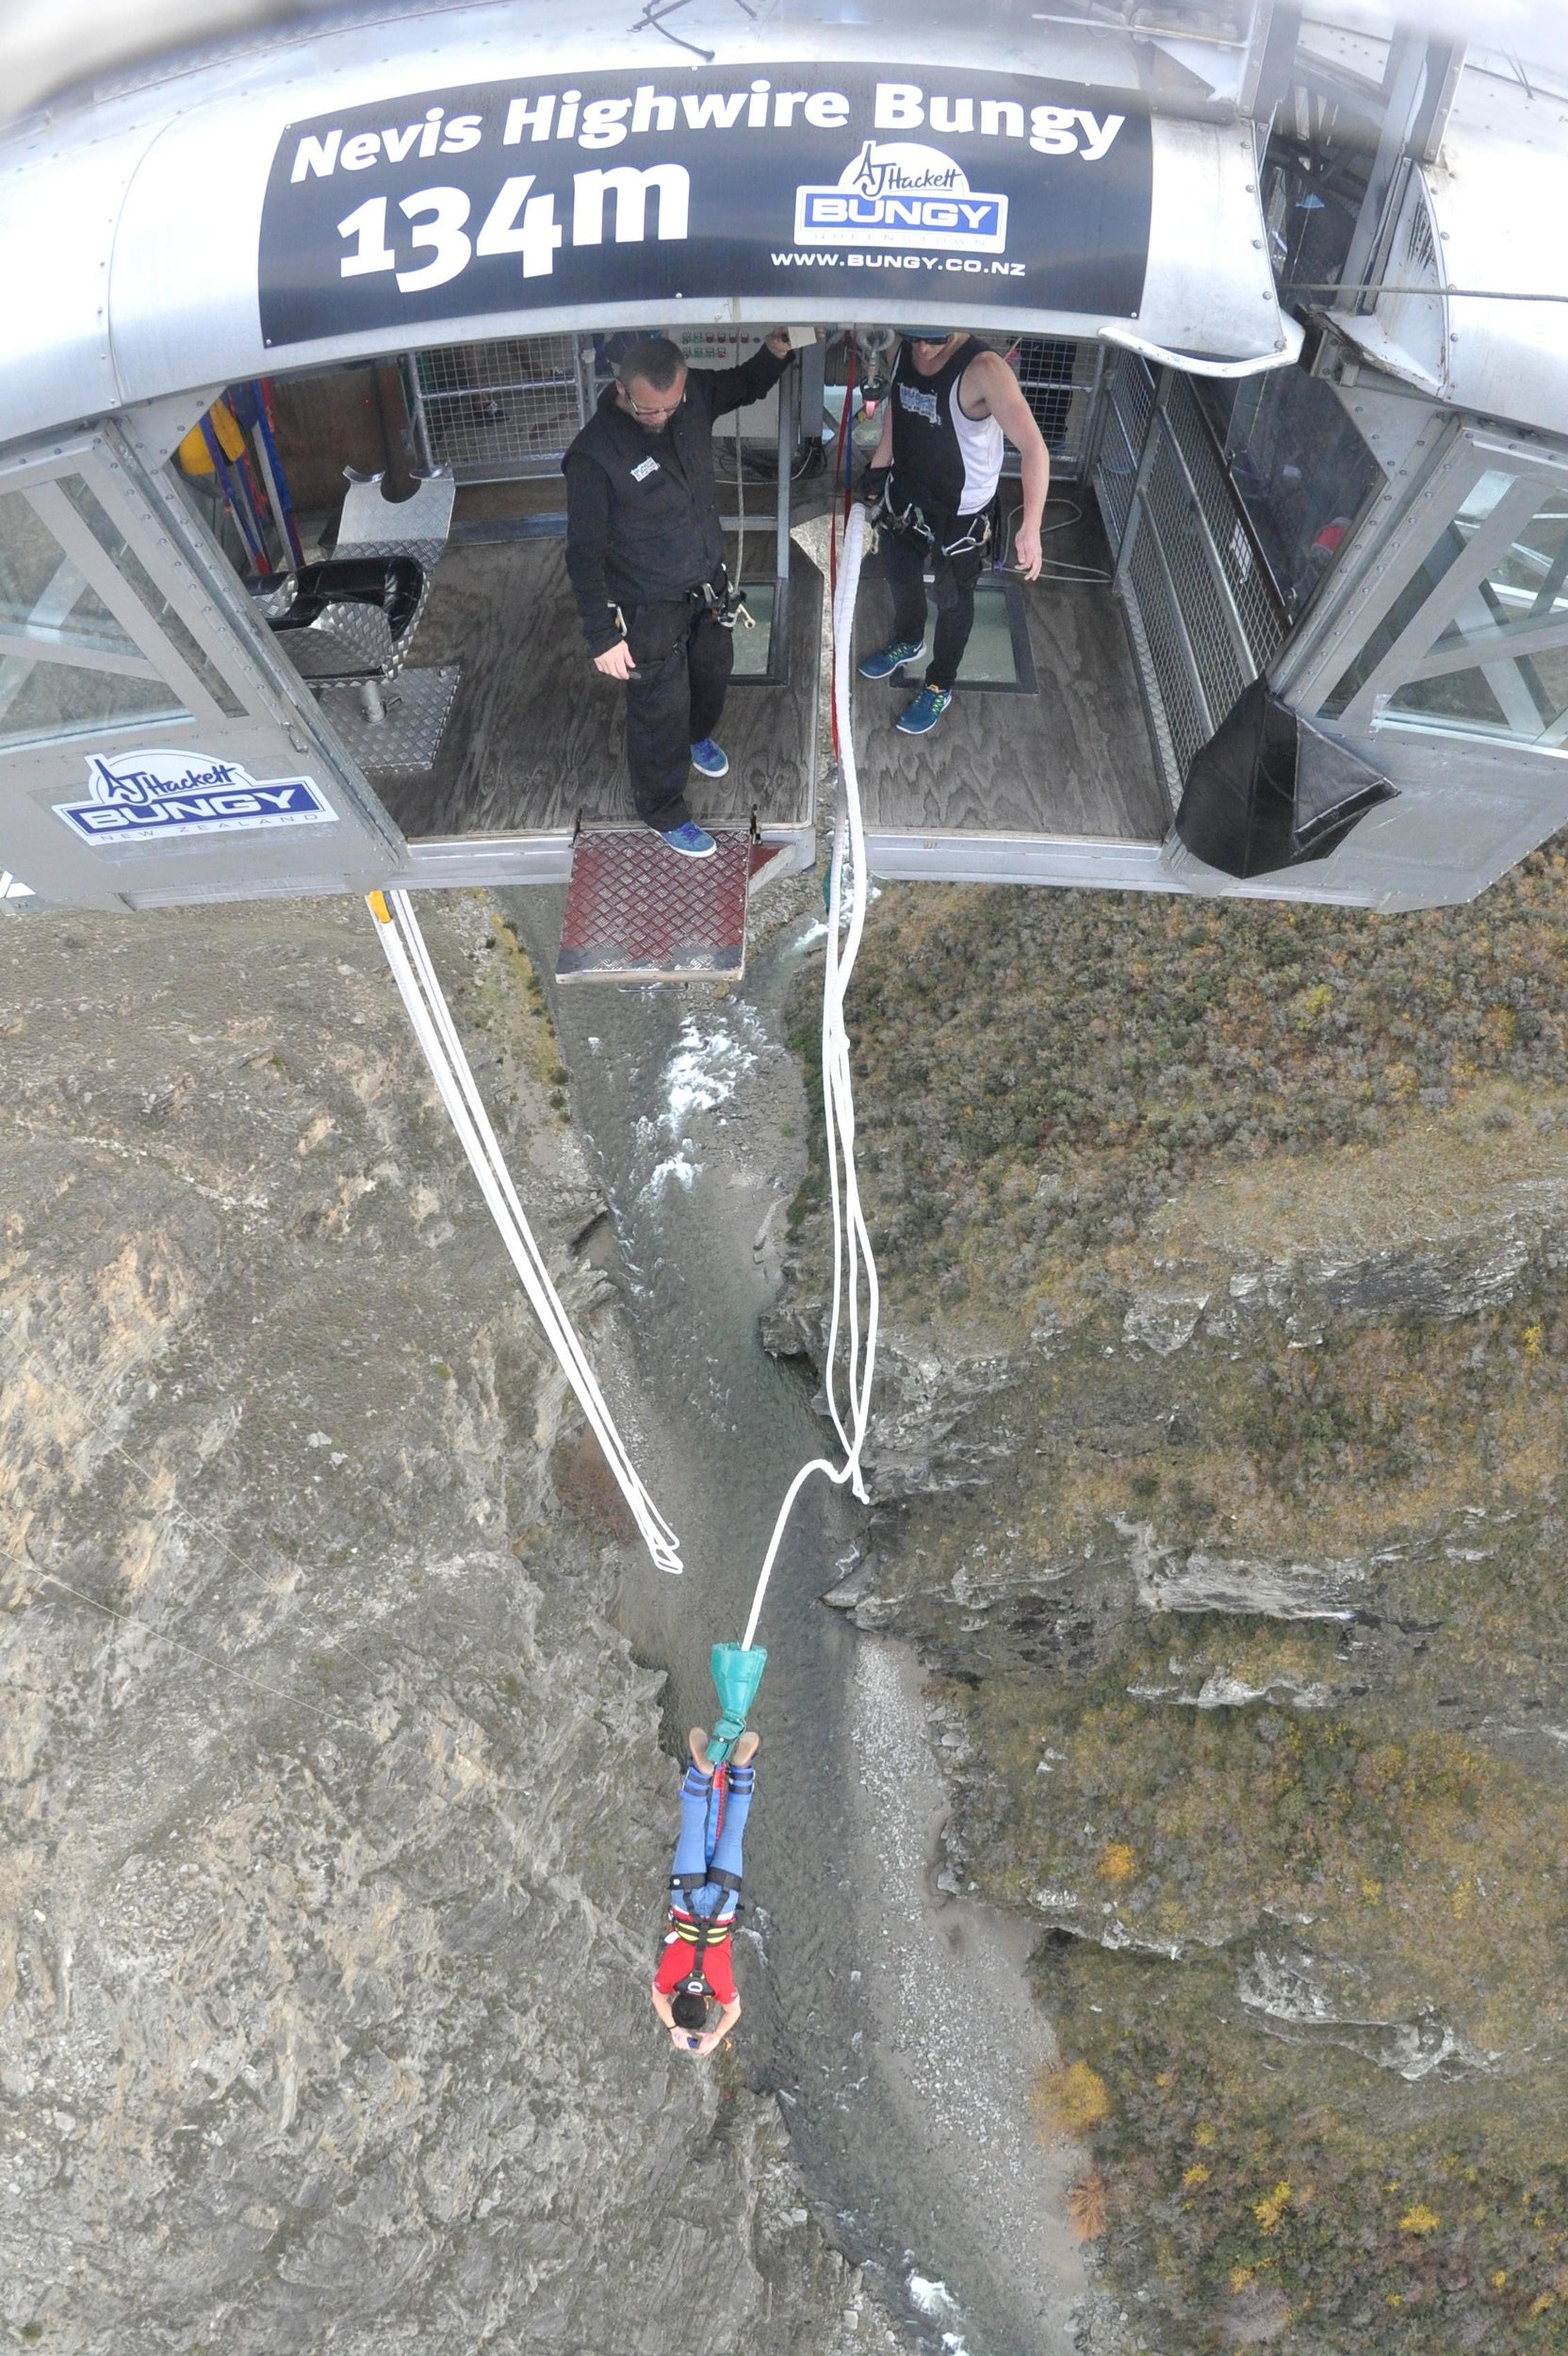 Mid-jump of the AJ Hackett Nevis Bungy Jump in Queenstown New Zealand.